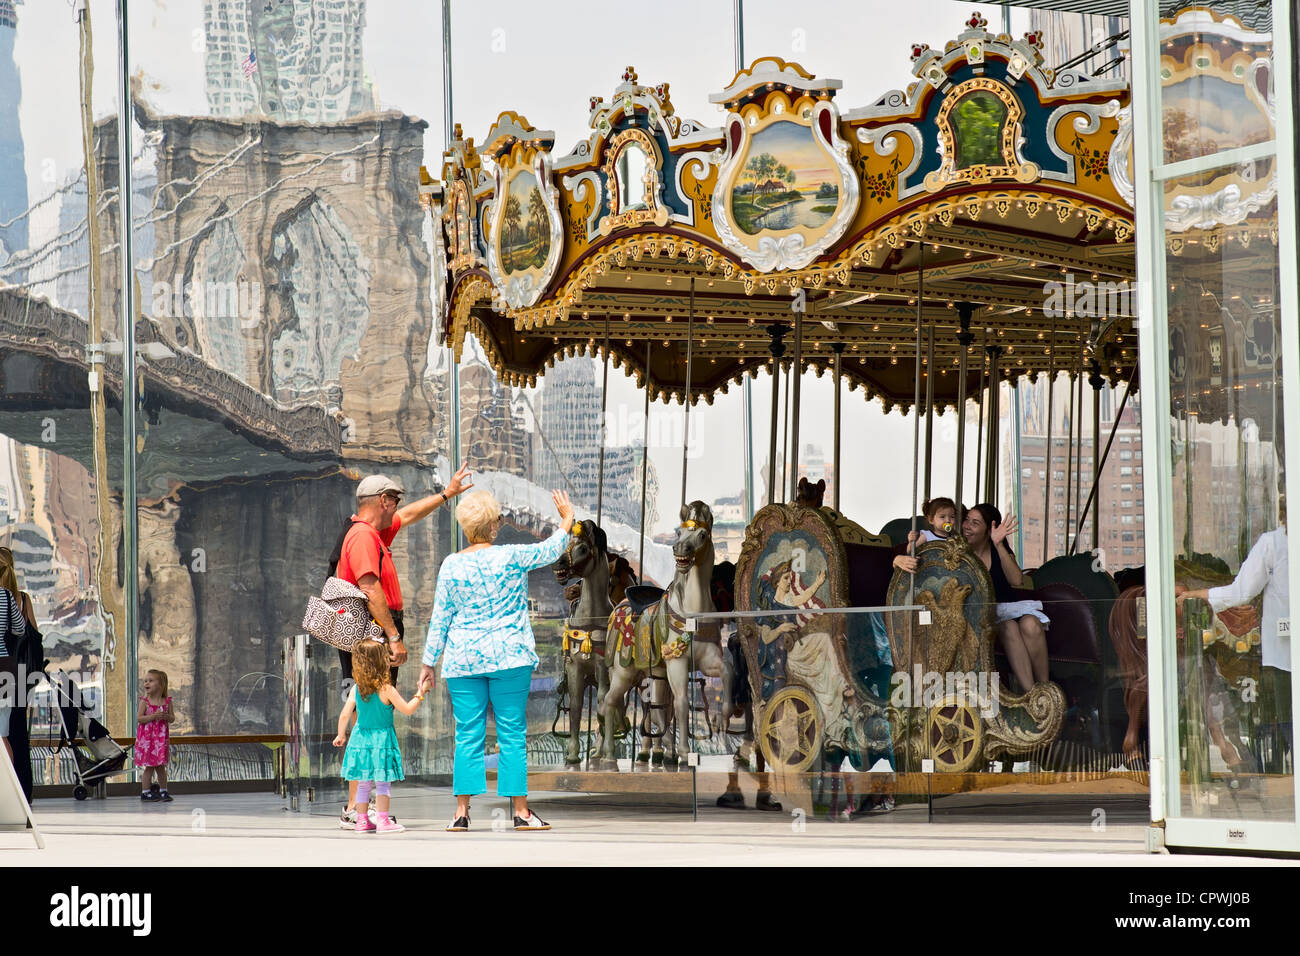 Older couple with young child wave at people on Jane's Carousel, Brooklyn Bridge Park, Brooklyn, NY, US - Stock Image